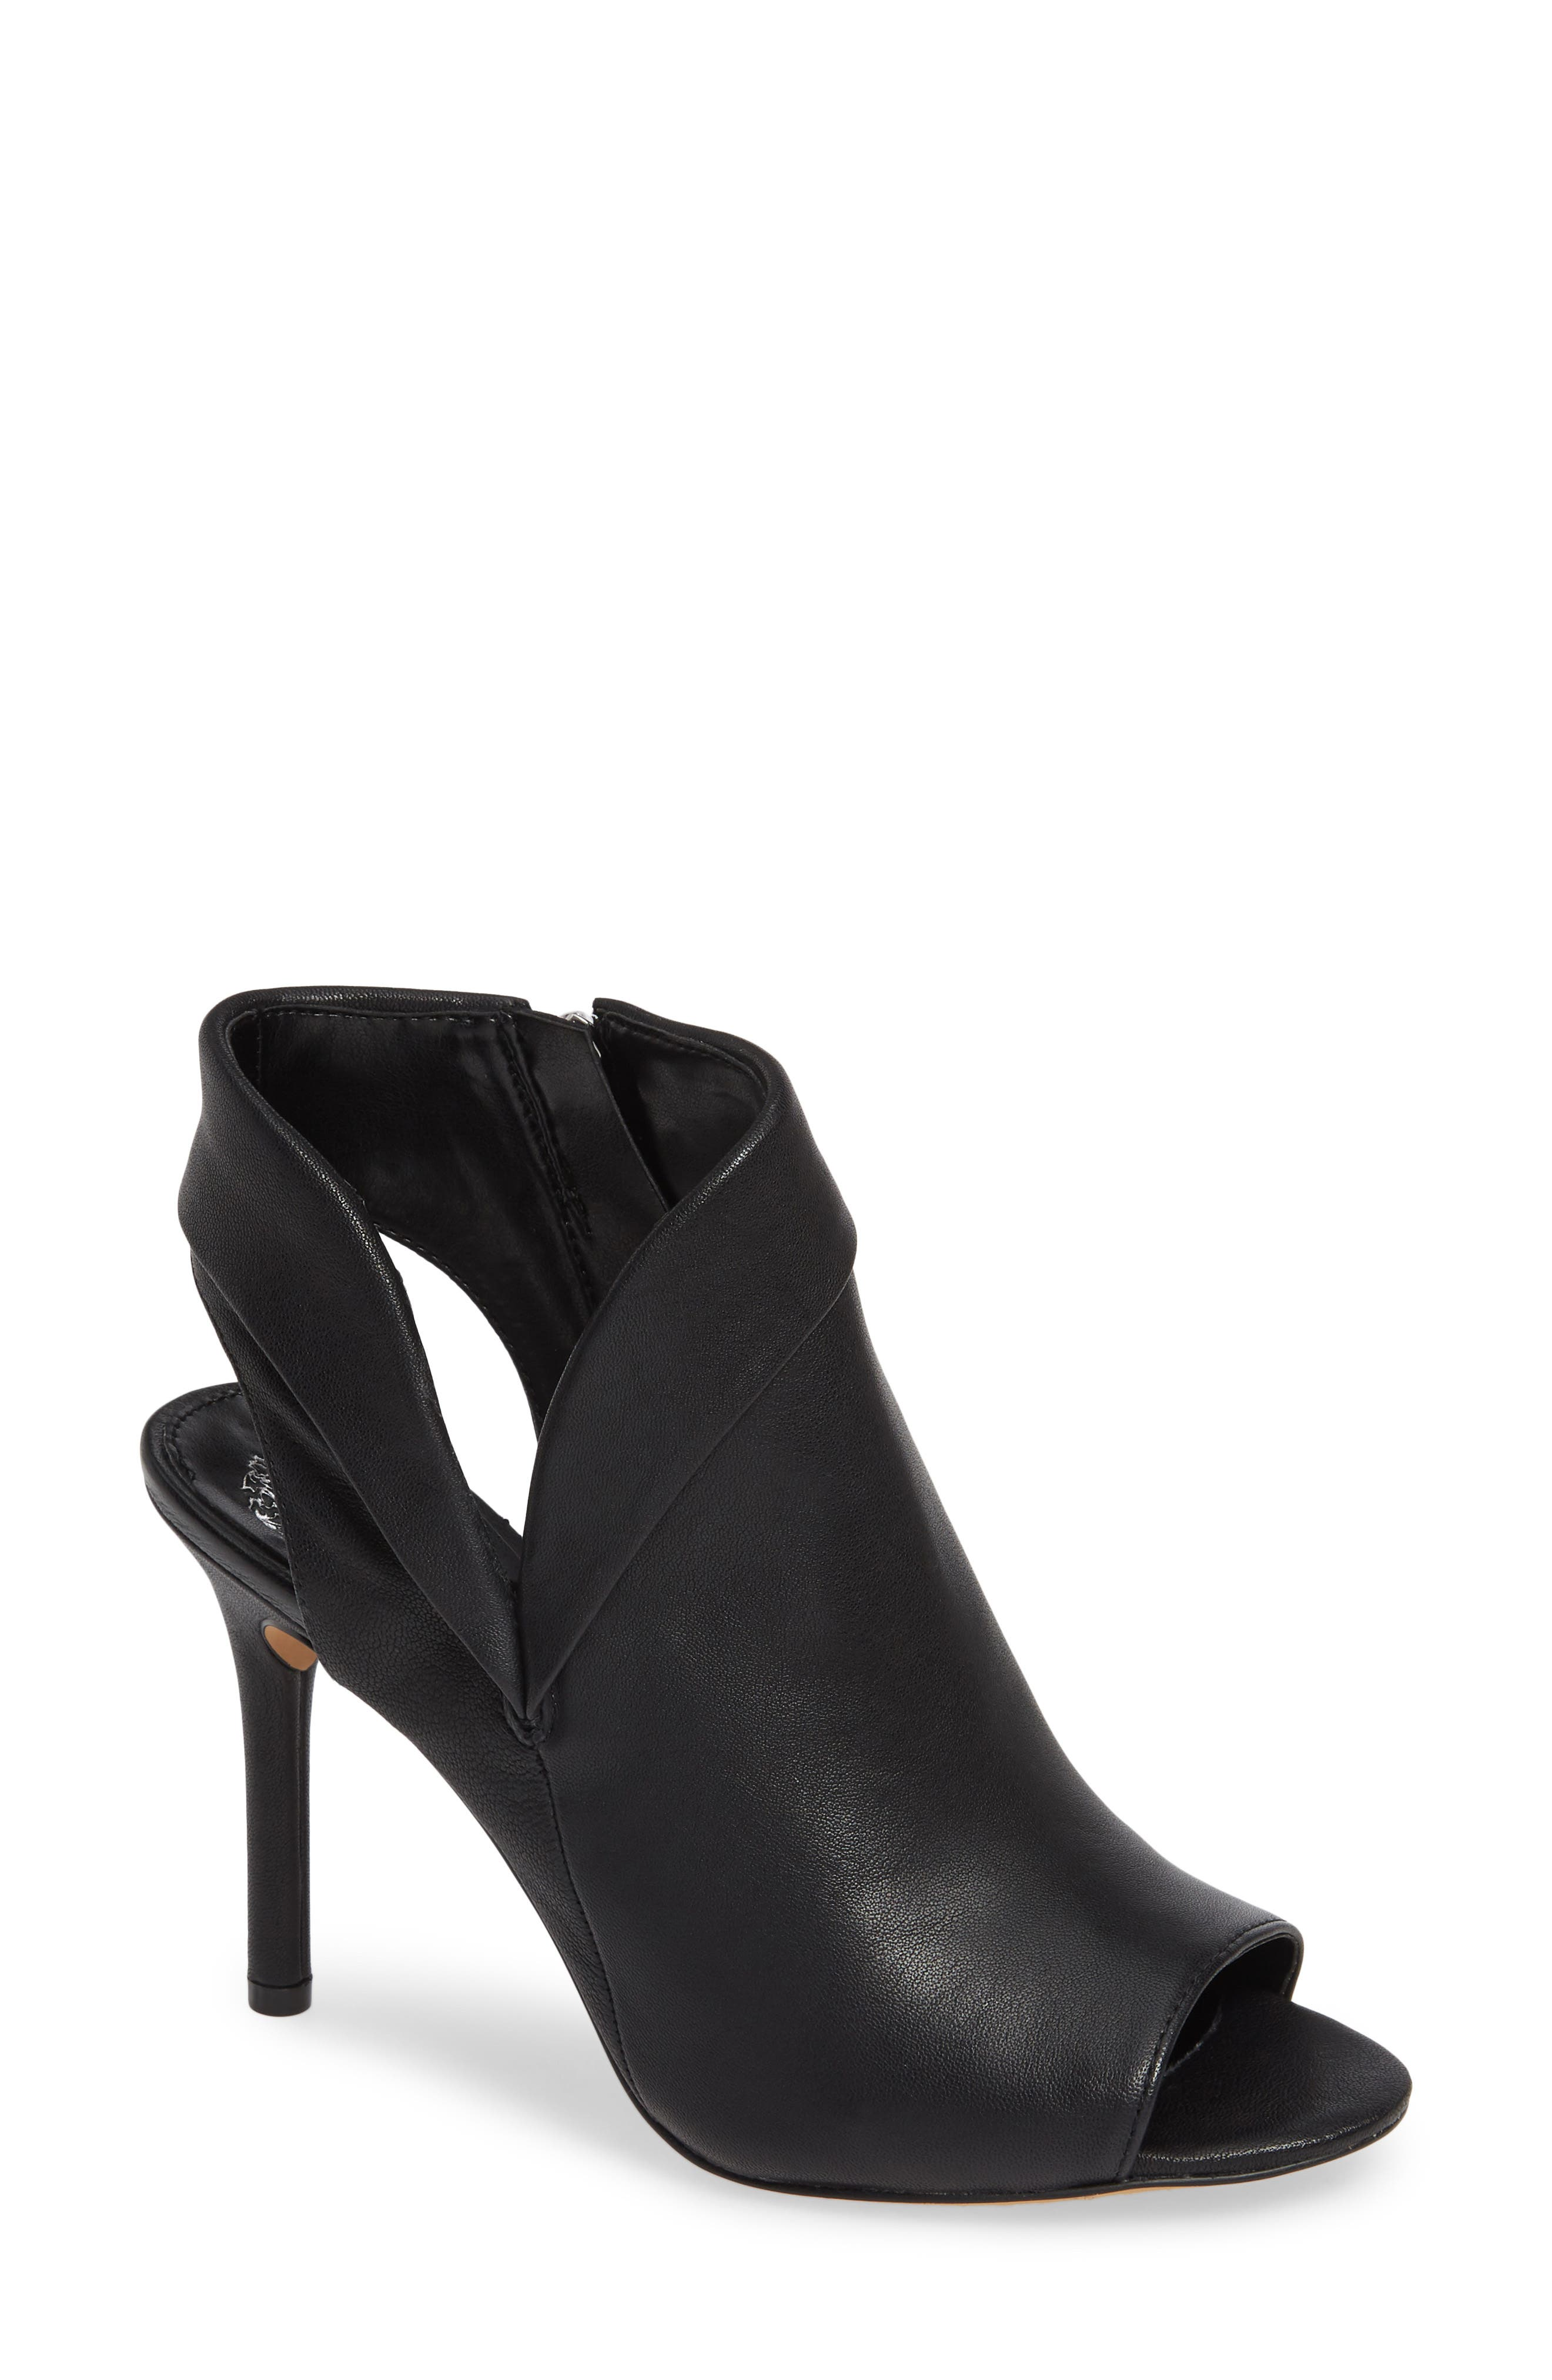 VINCE CAMUTO, Cholia Asymmetrical Sandal Bootie, Main thumbnail 1, color, BLACK LEATHER